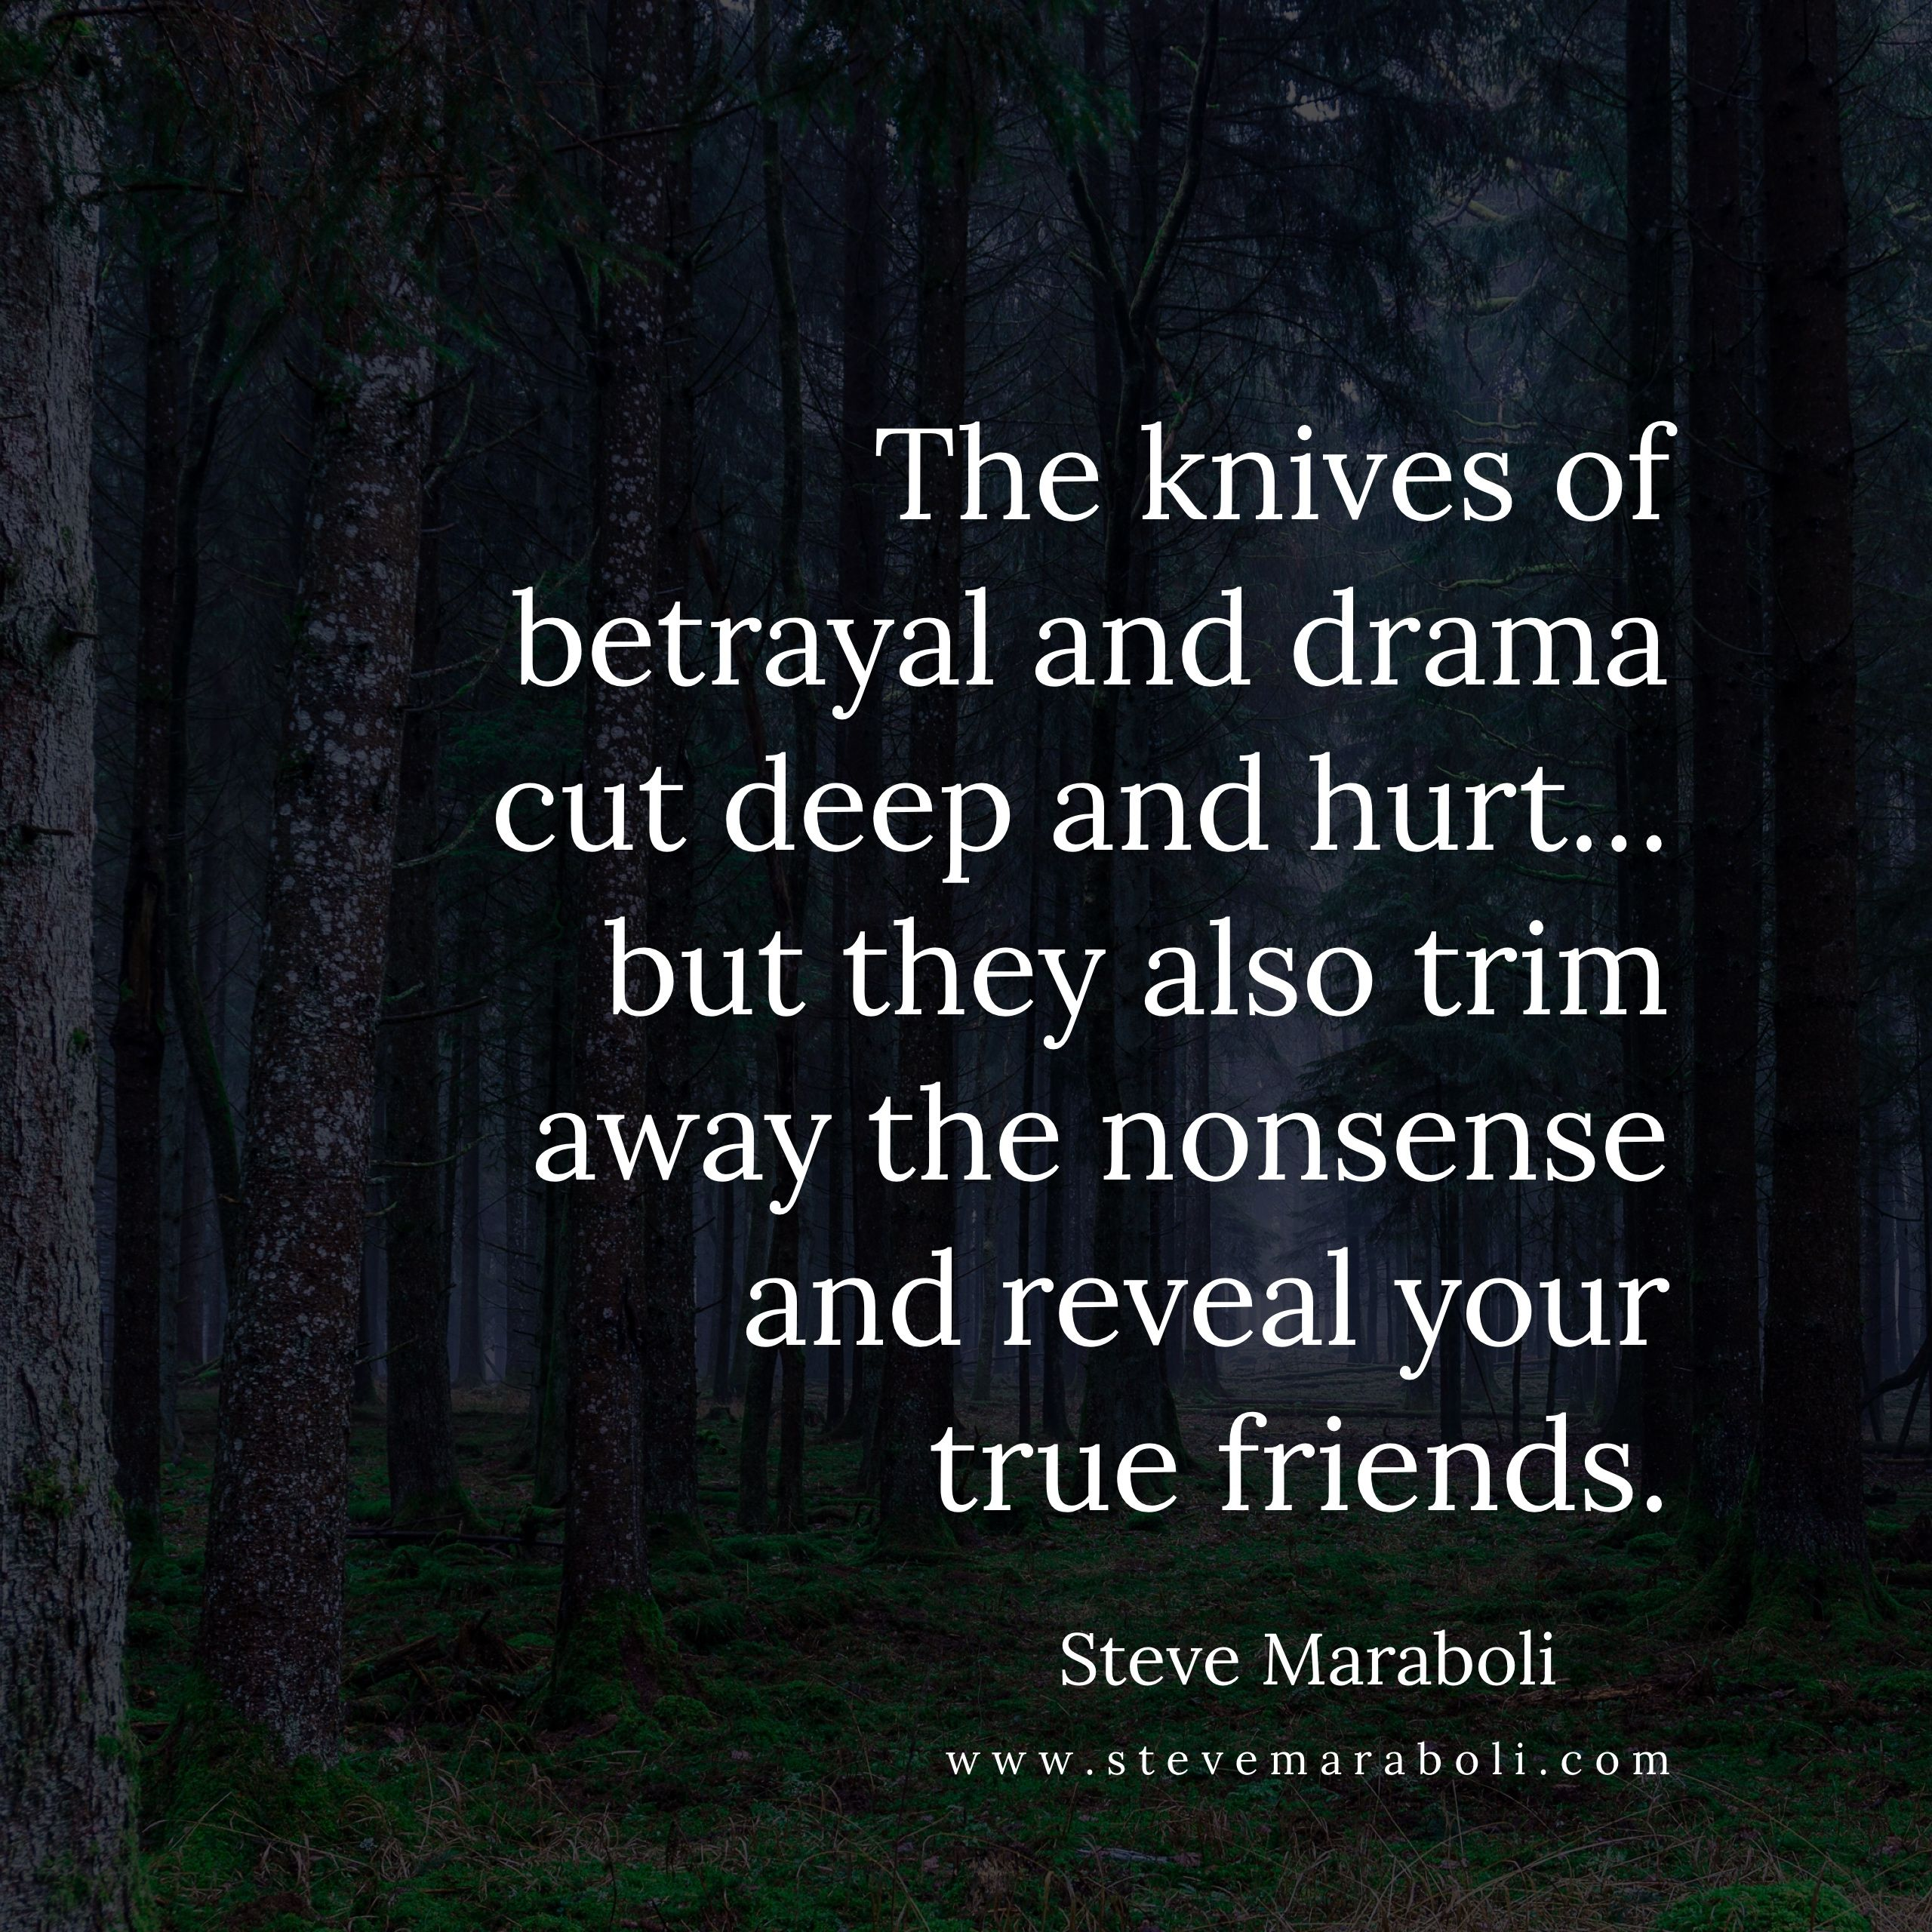 Friendship Betrayal Quotes: The Knives Of Betrayal And Drama Cut Deep And Hurt... But